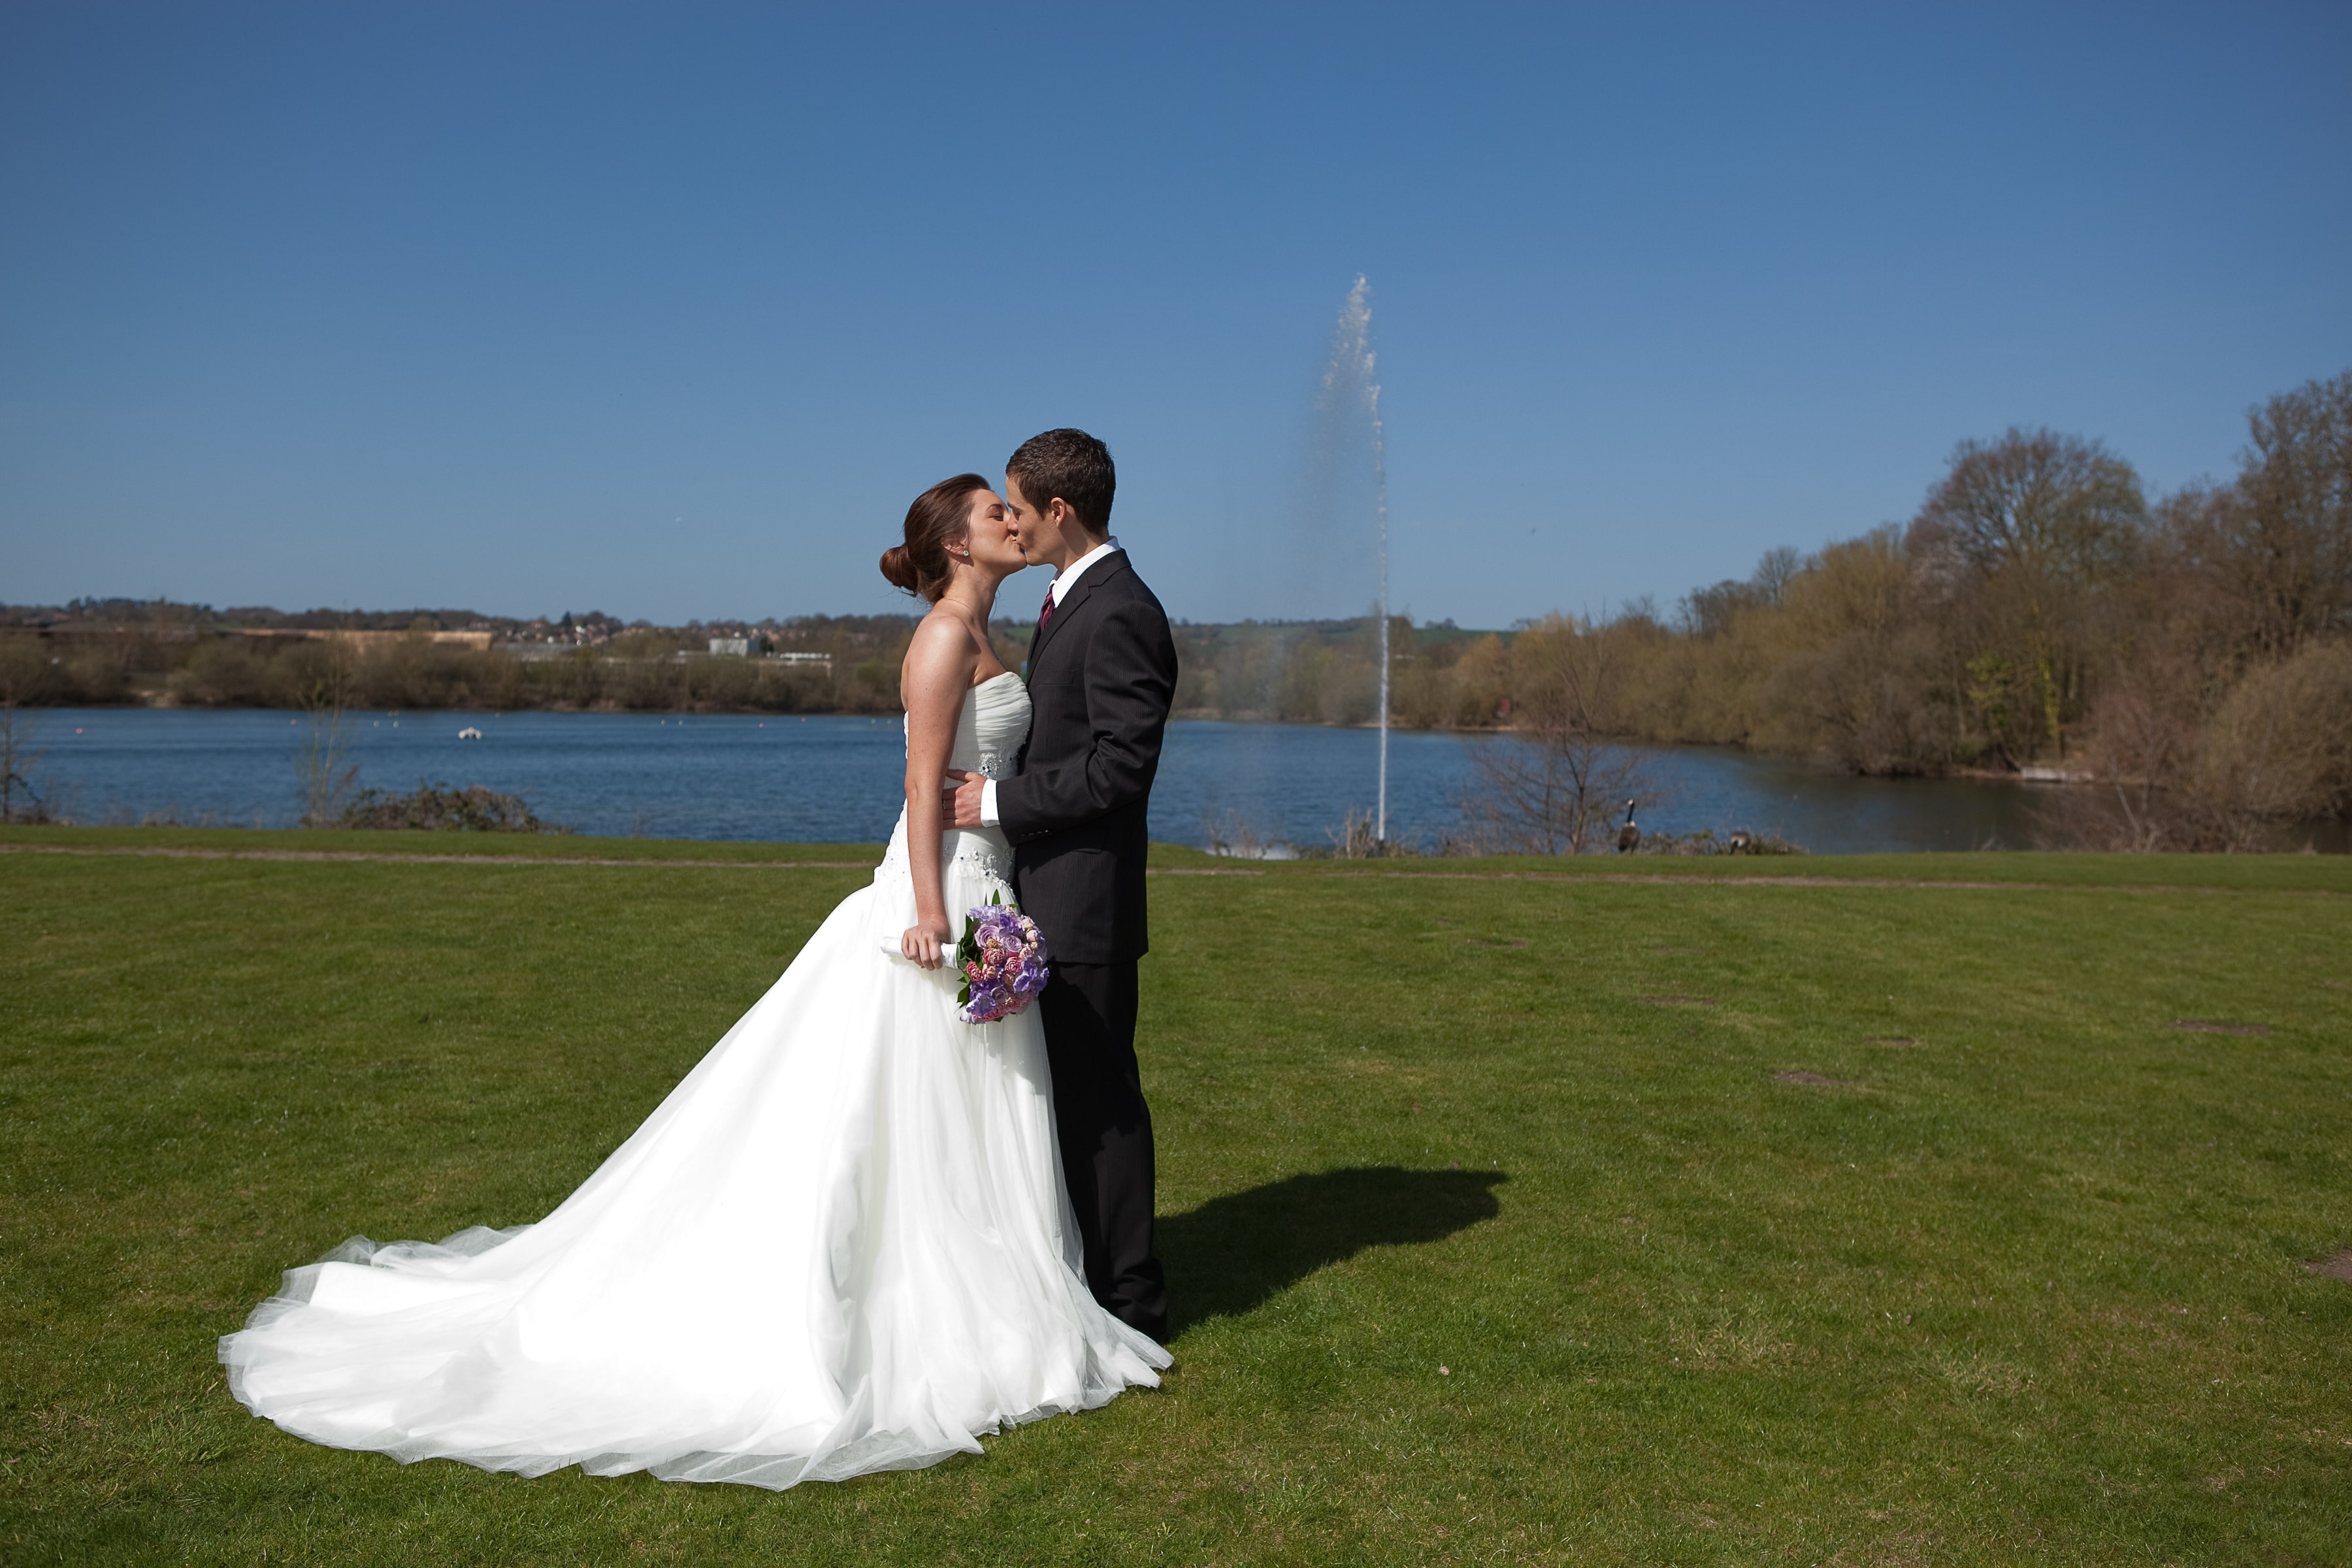 Wonderful Wedding Couple on our lawns in front of the lake